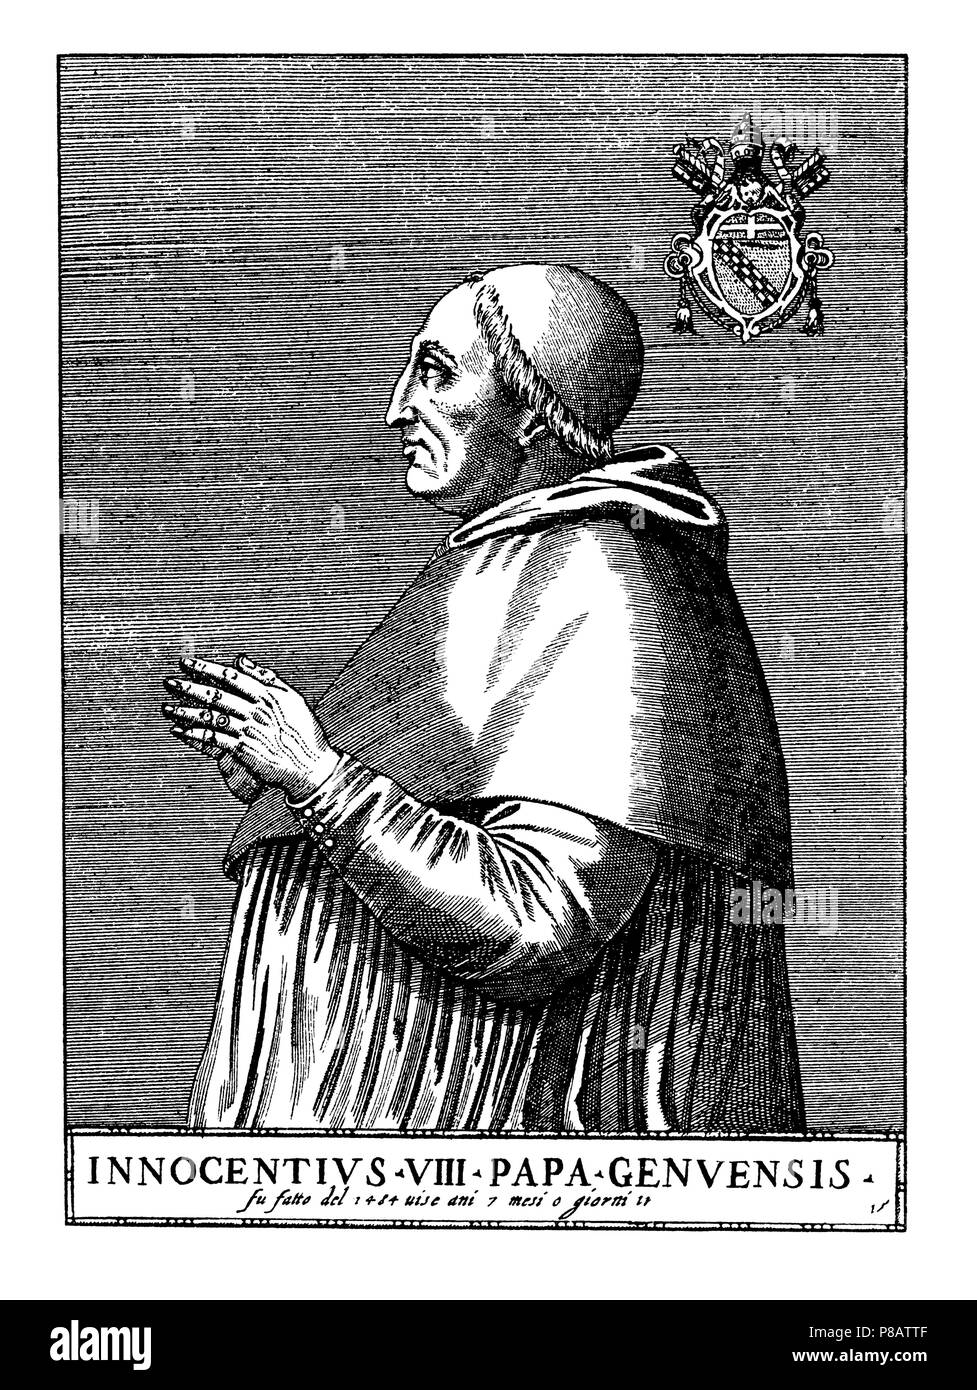 Elected pope in 1484, died 1492, 1923